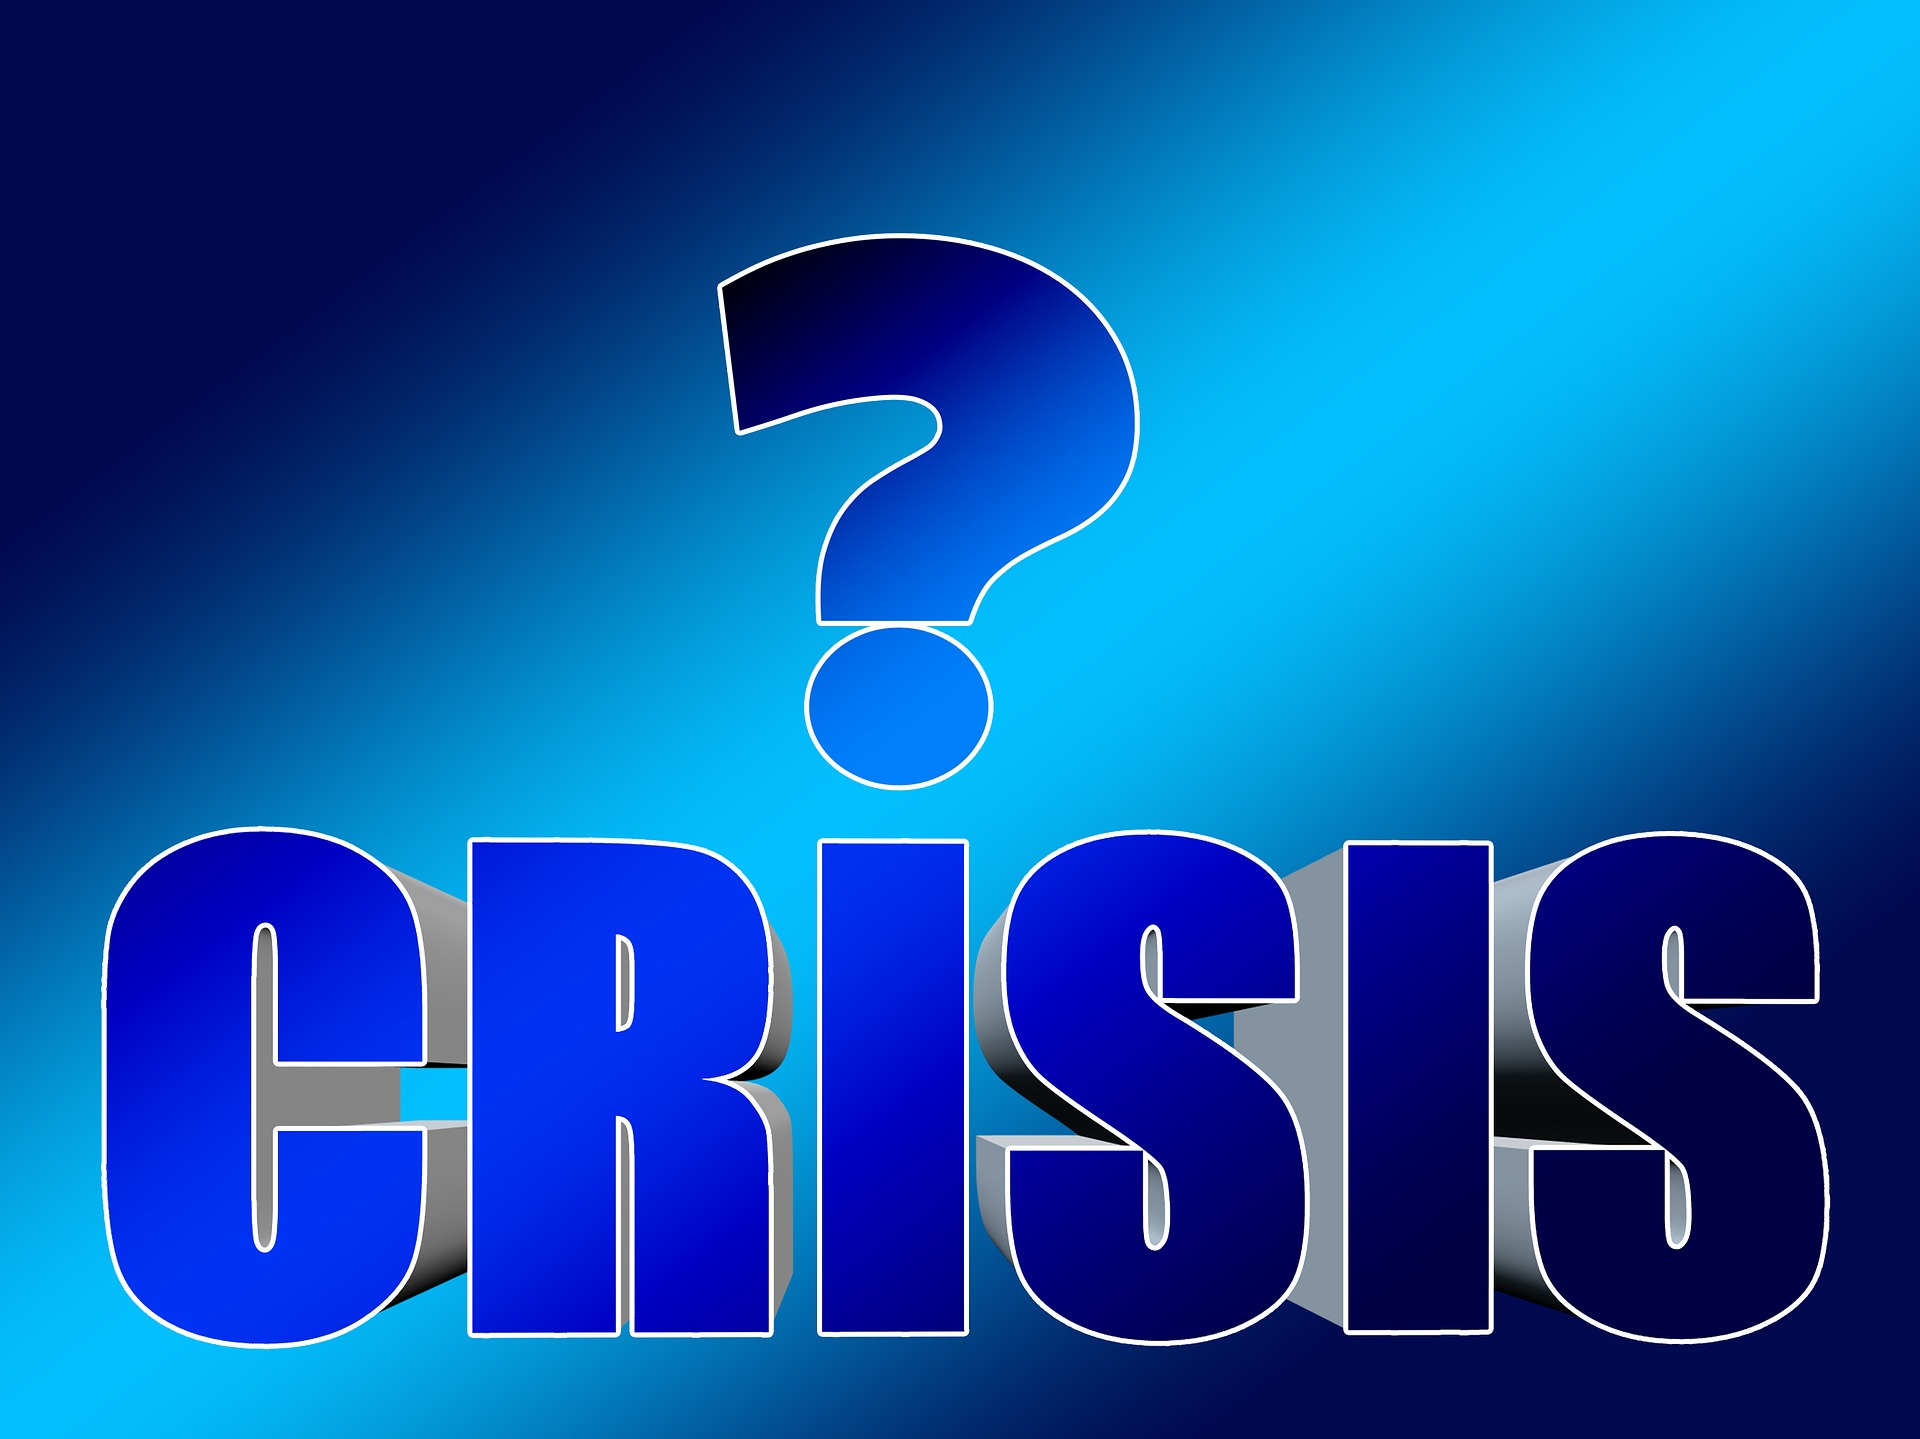 What are the Answers to the Business Rates Crisis?